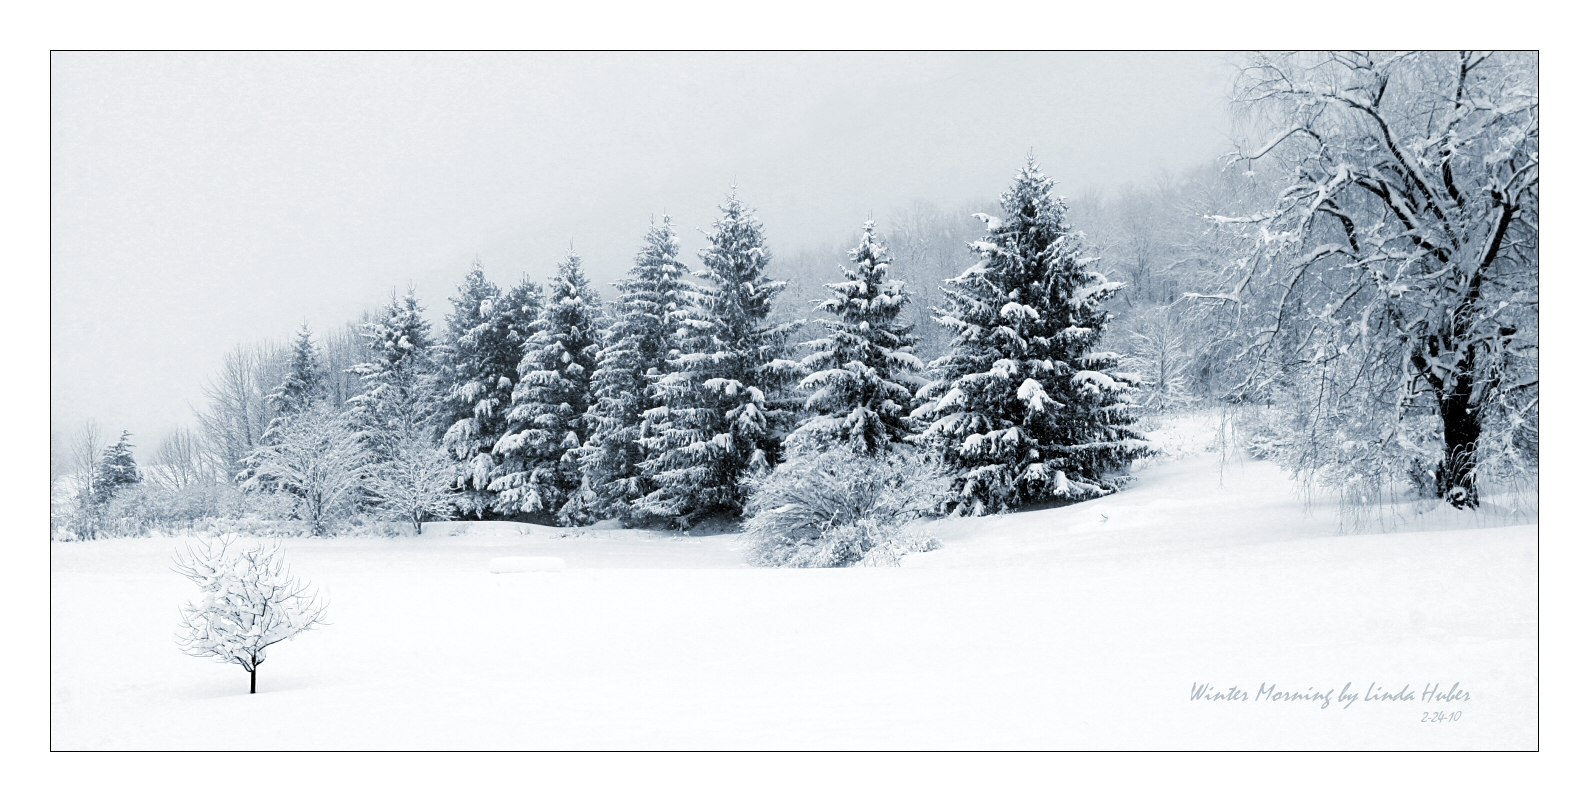 Winter Morning by imaginee